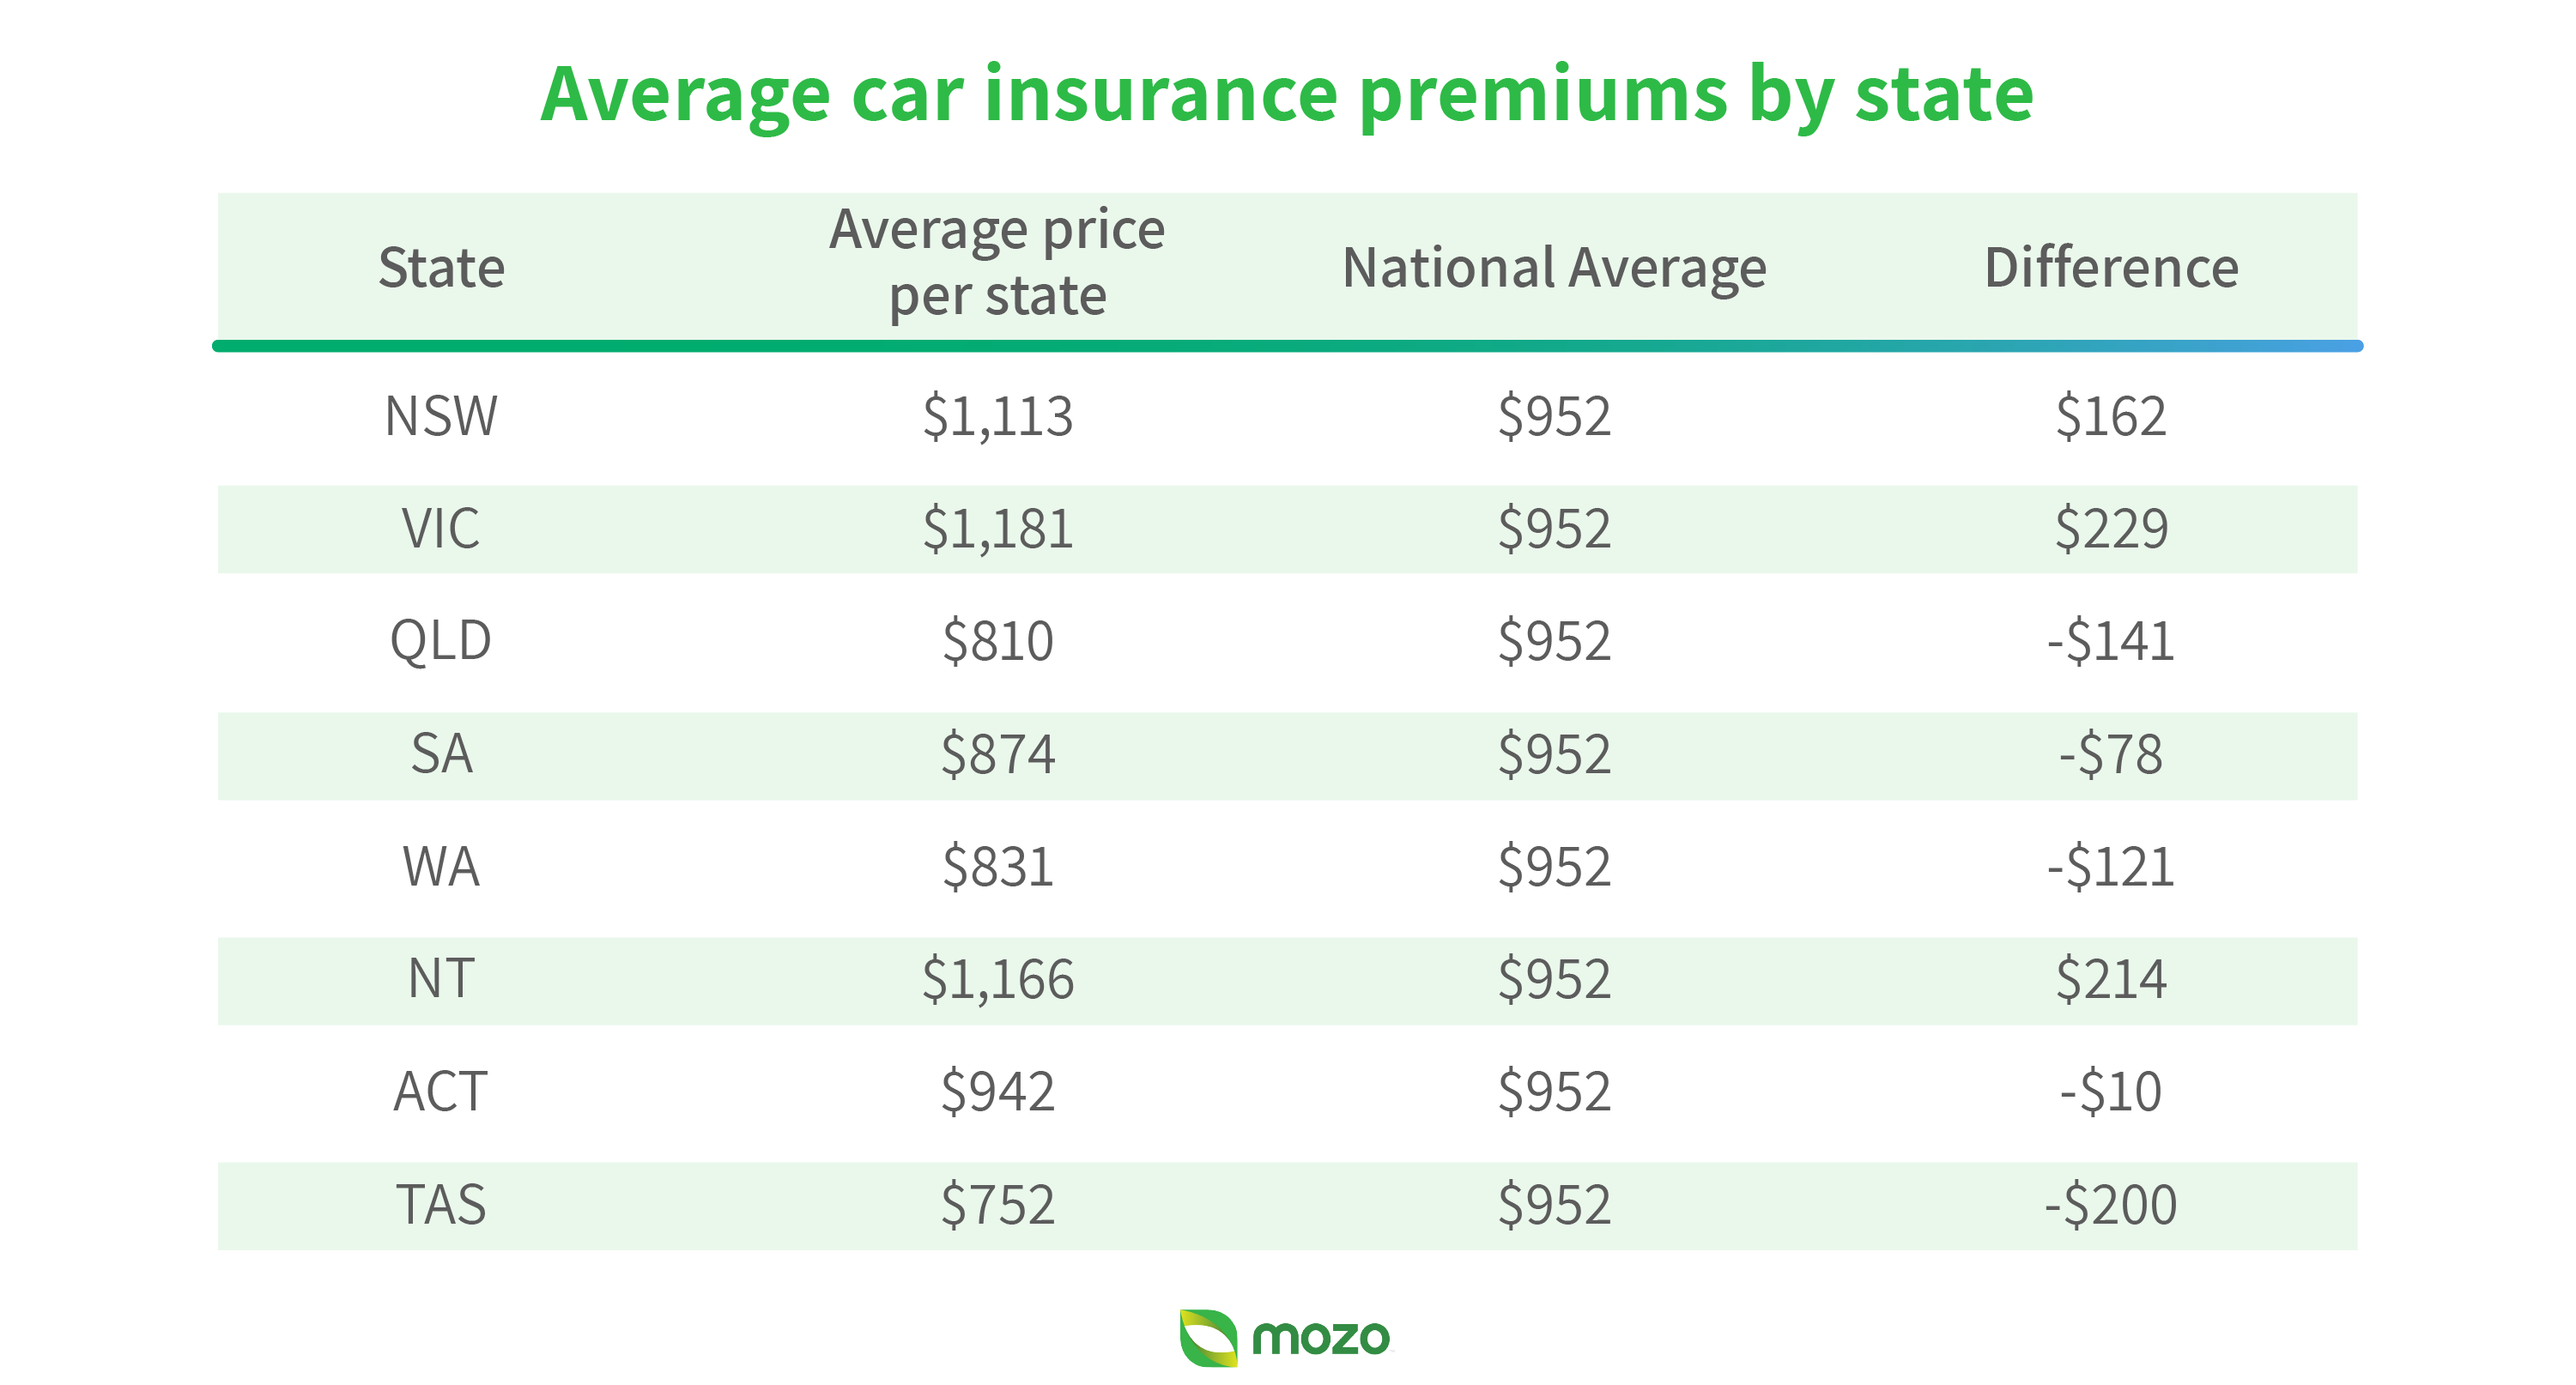 Graphic image showing average car insurance premiums by state